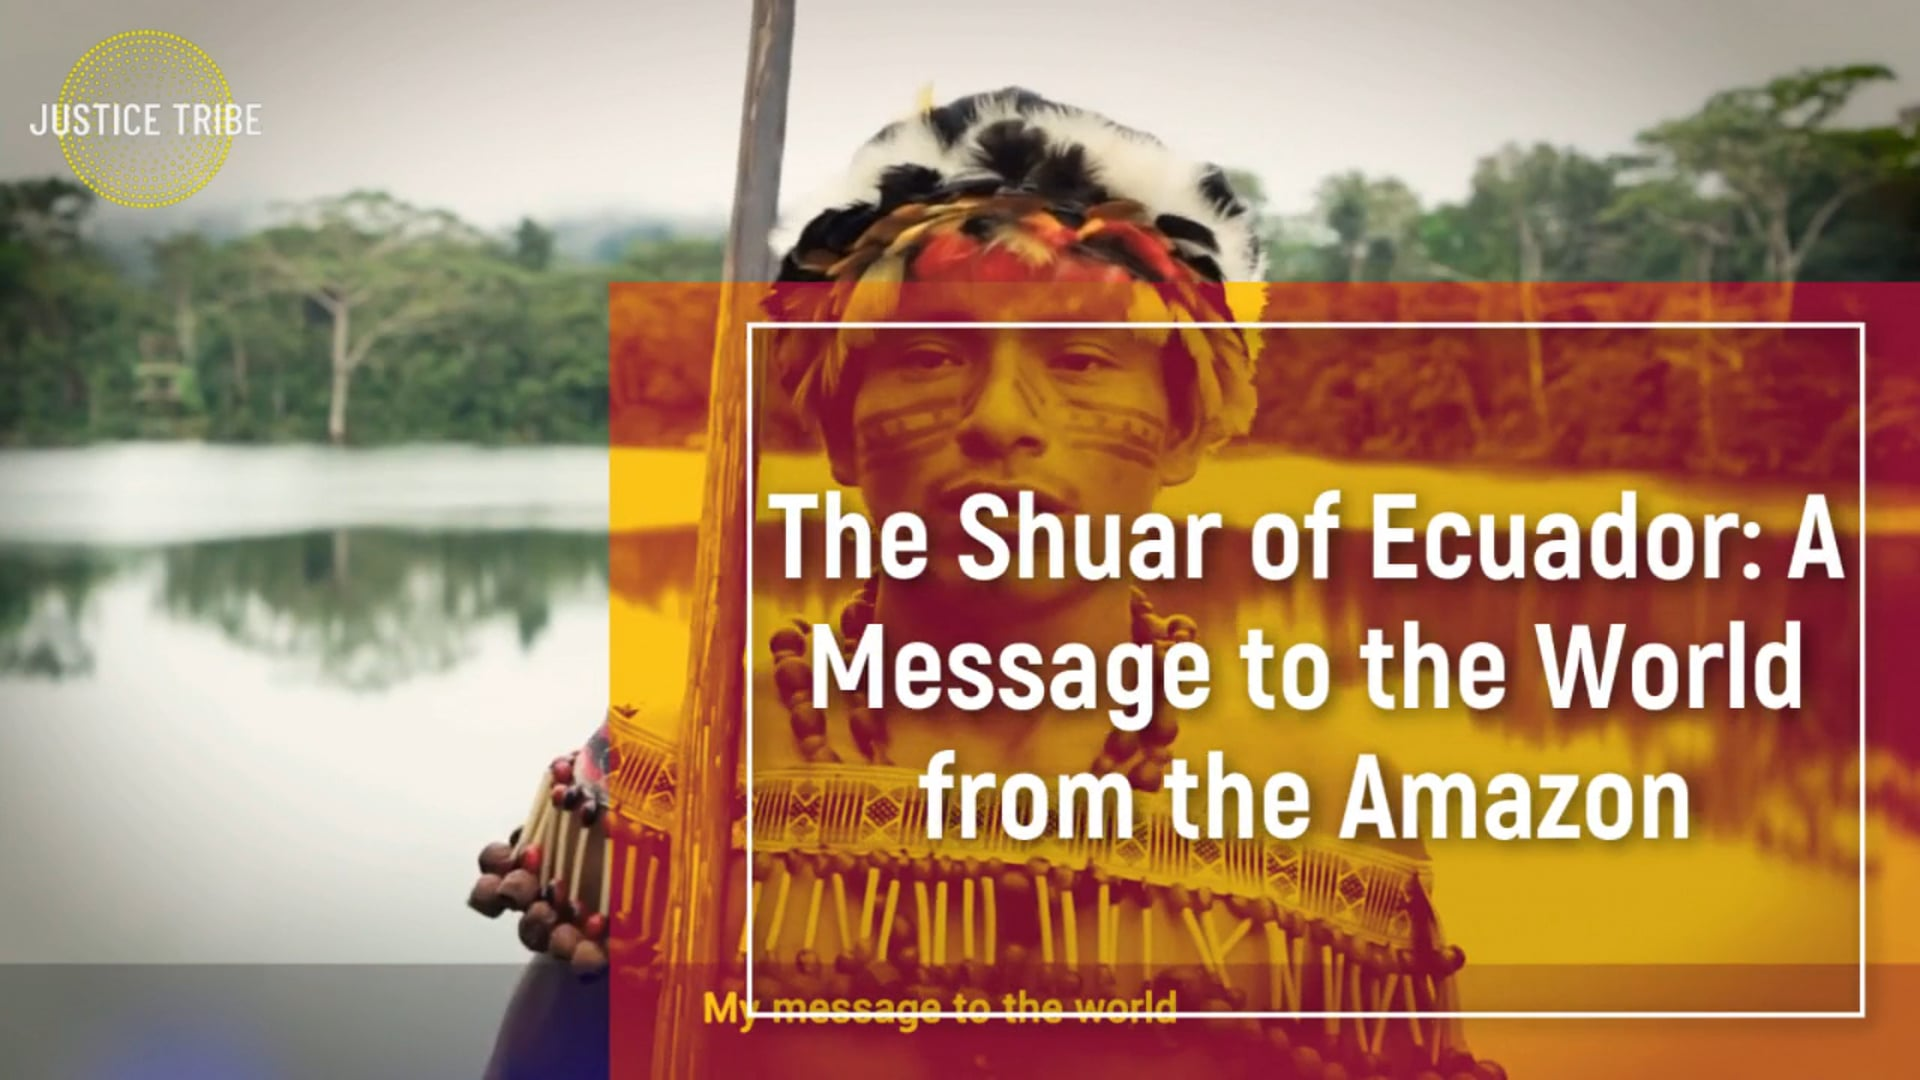 The Shuar of Ecuador: A Message to the World from the Amazon